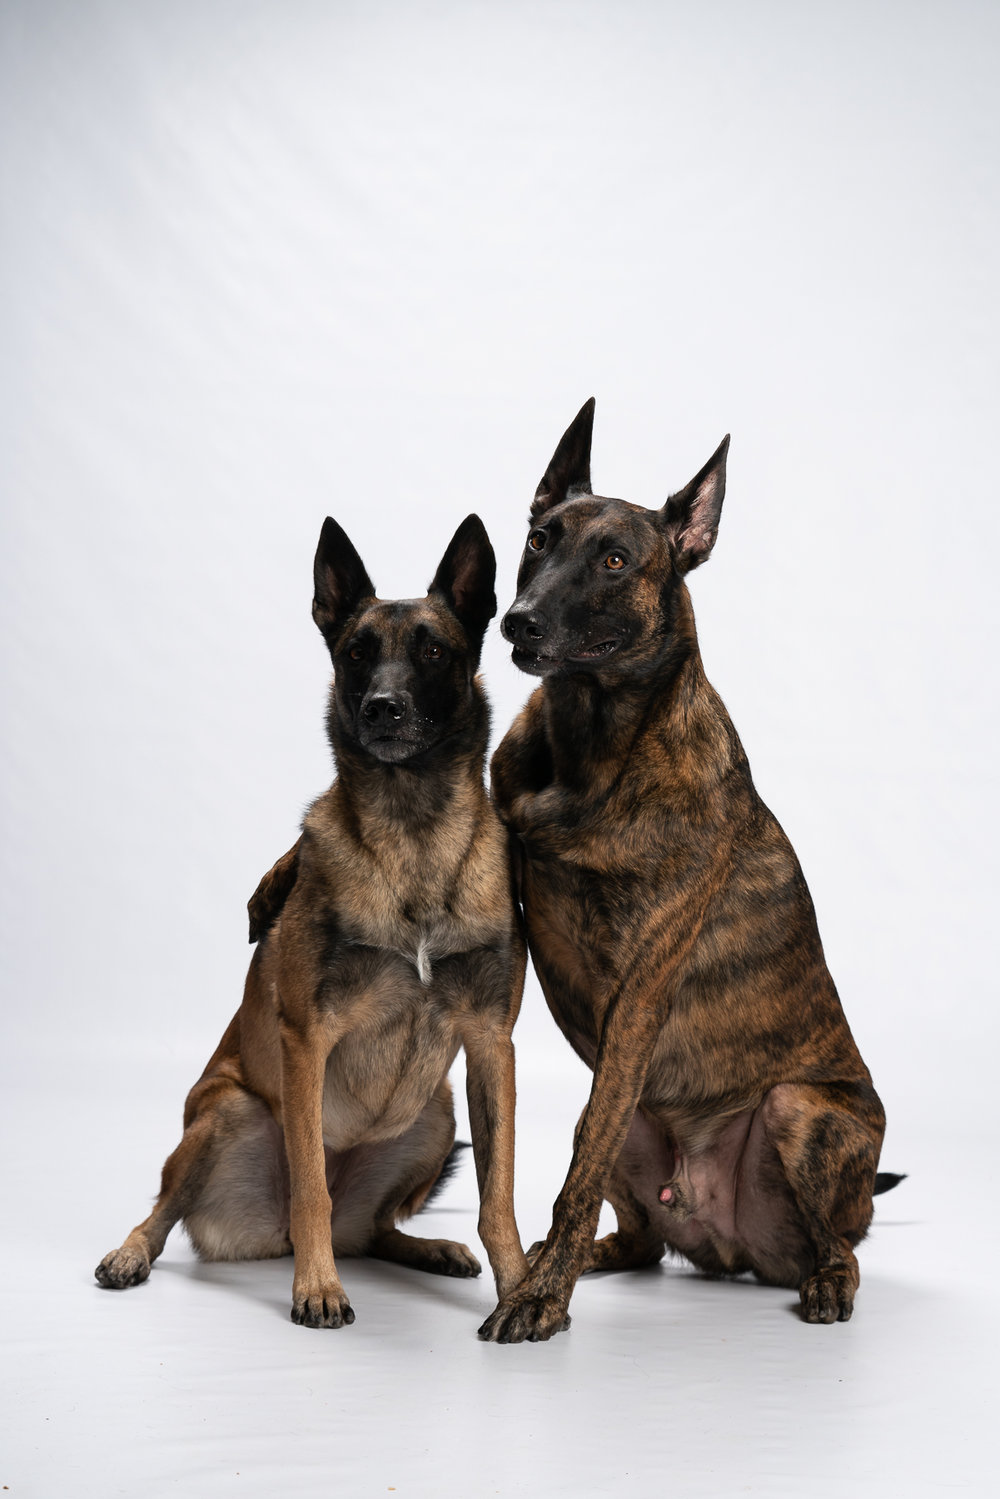 """We had lots of good boys and good girls in the Studio for the event, but these two could """"hug"""" on command from their human!"""